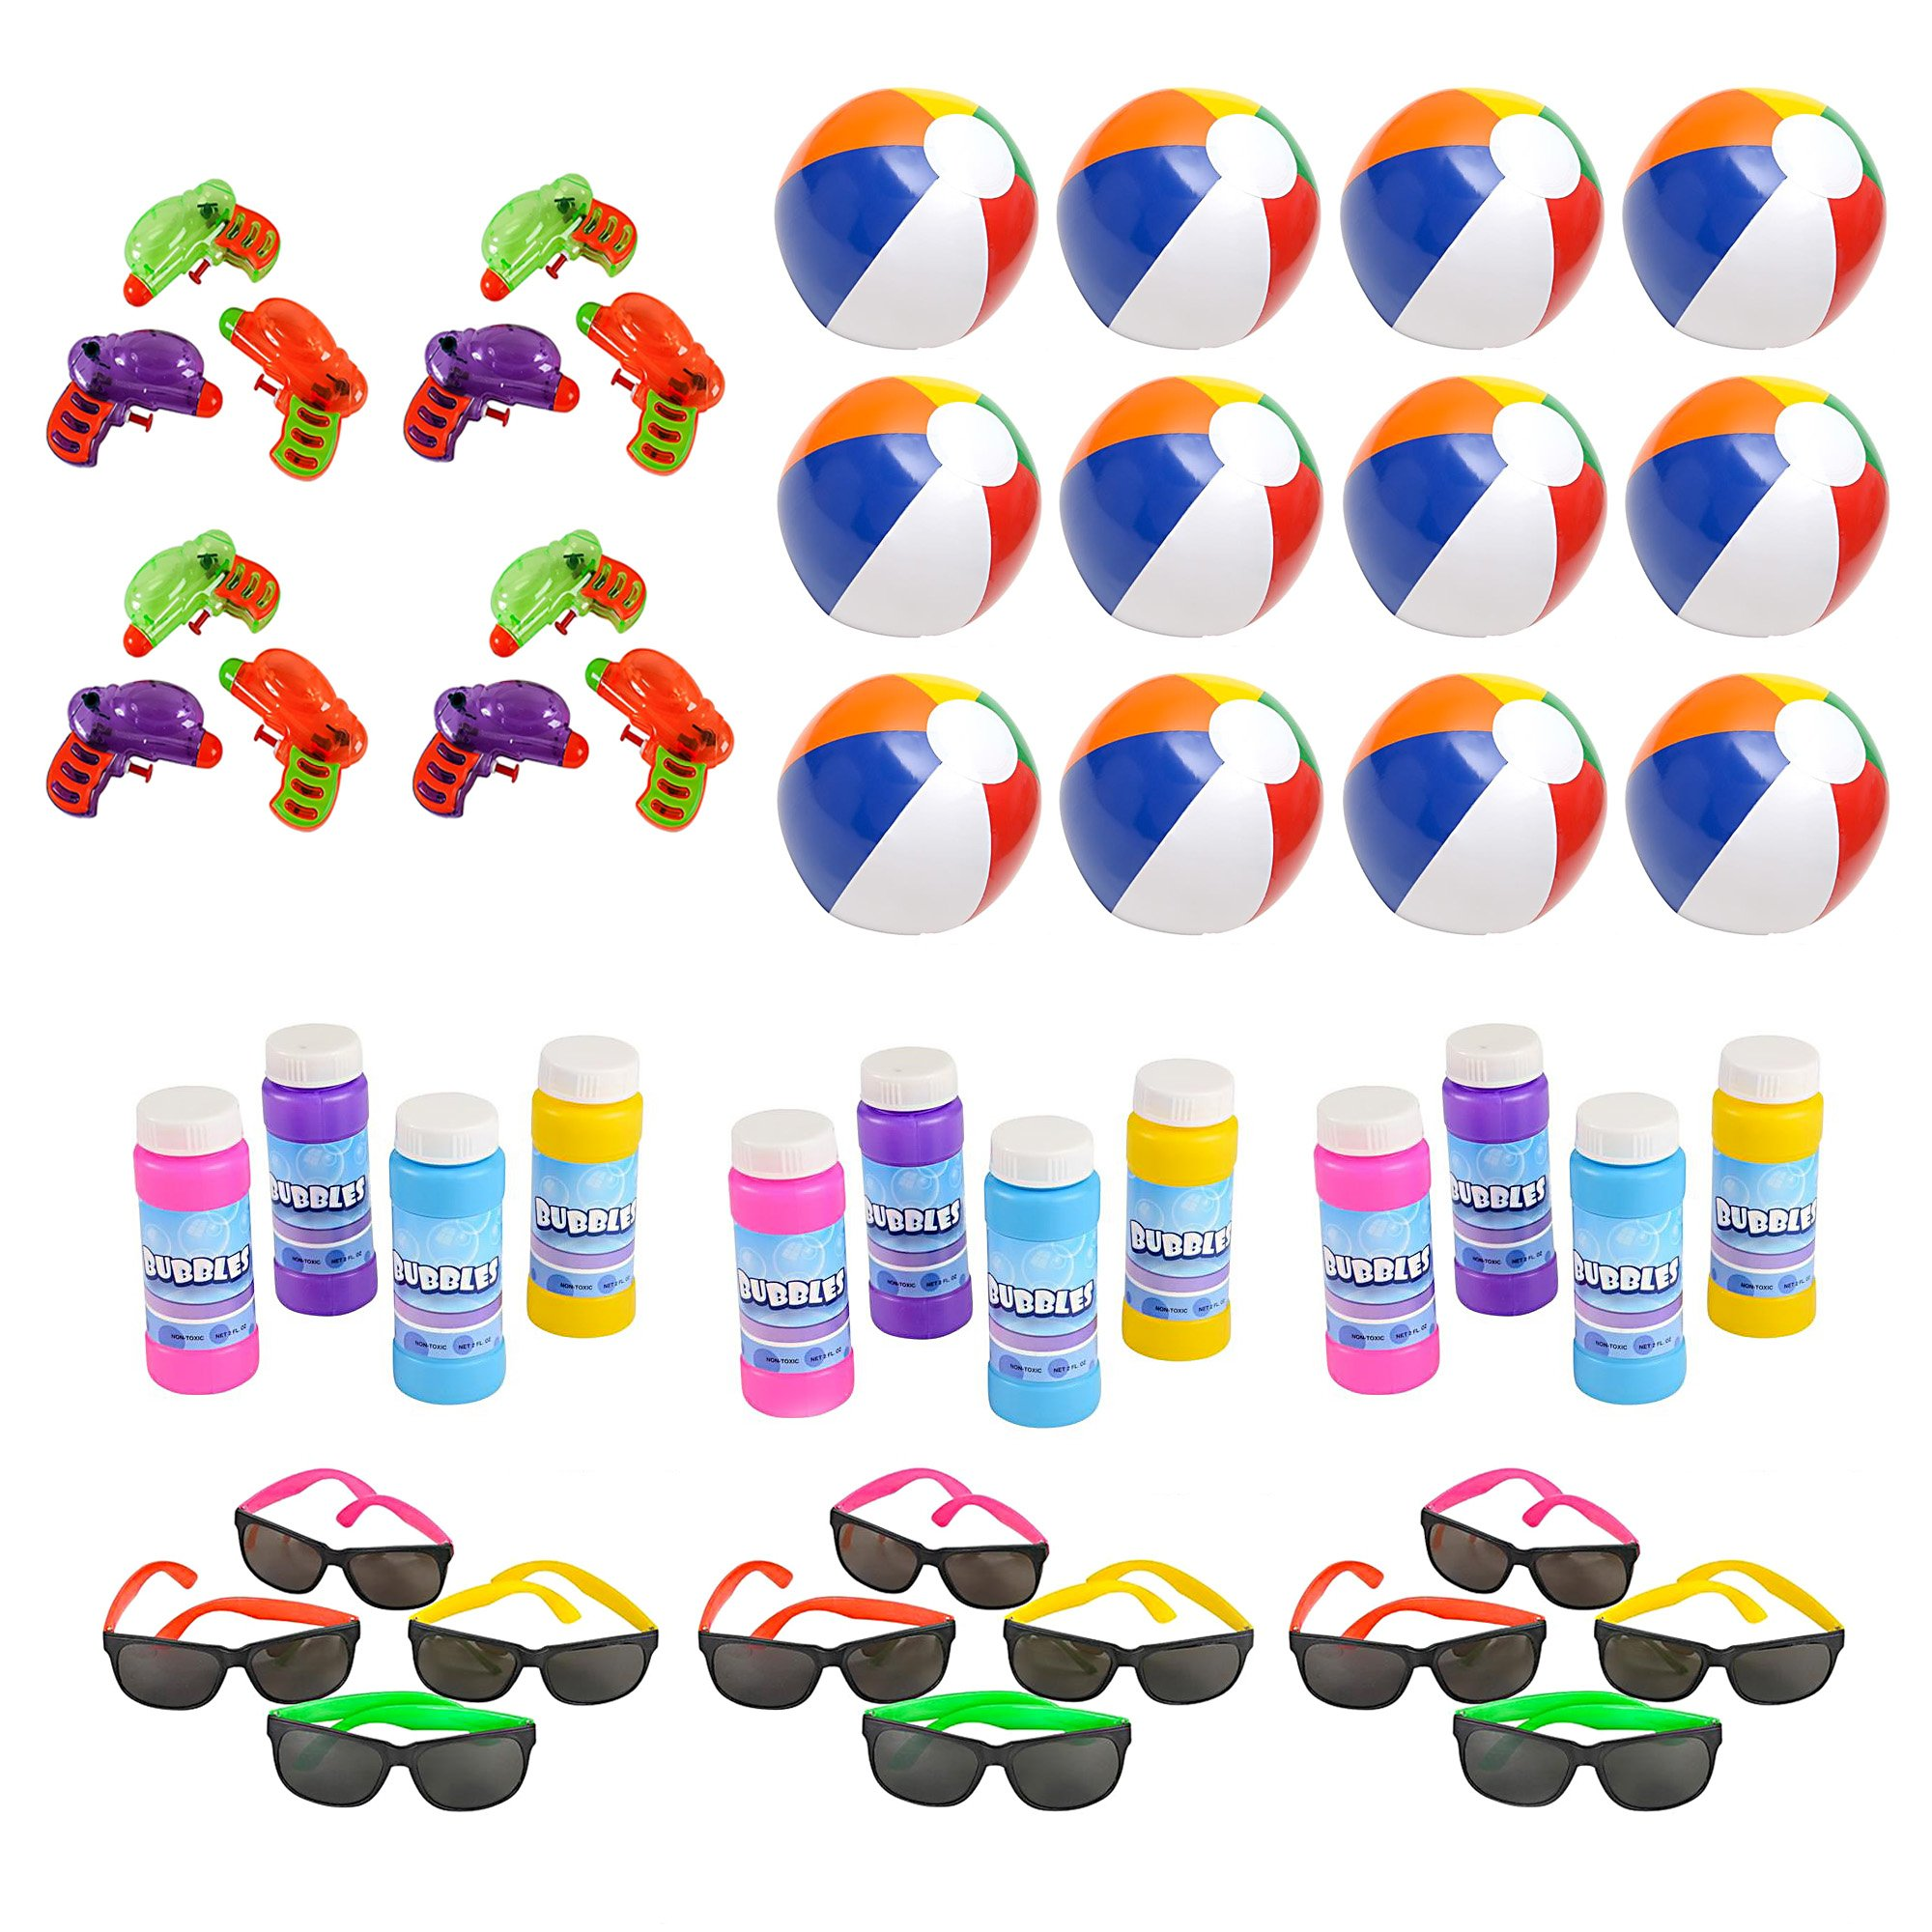 3c83a4bb35 Get Quotations · Mega Pool Party and Beach Party Favors - Summer Fun Toy  Mega Assortment Bulk Pack of